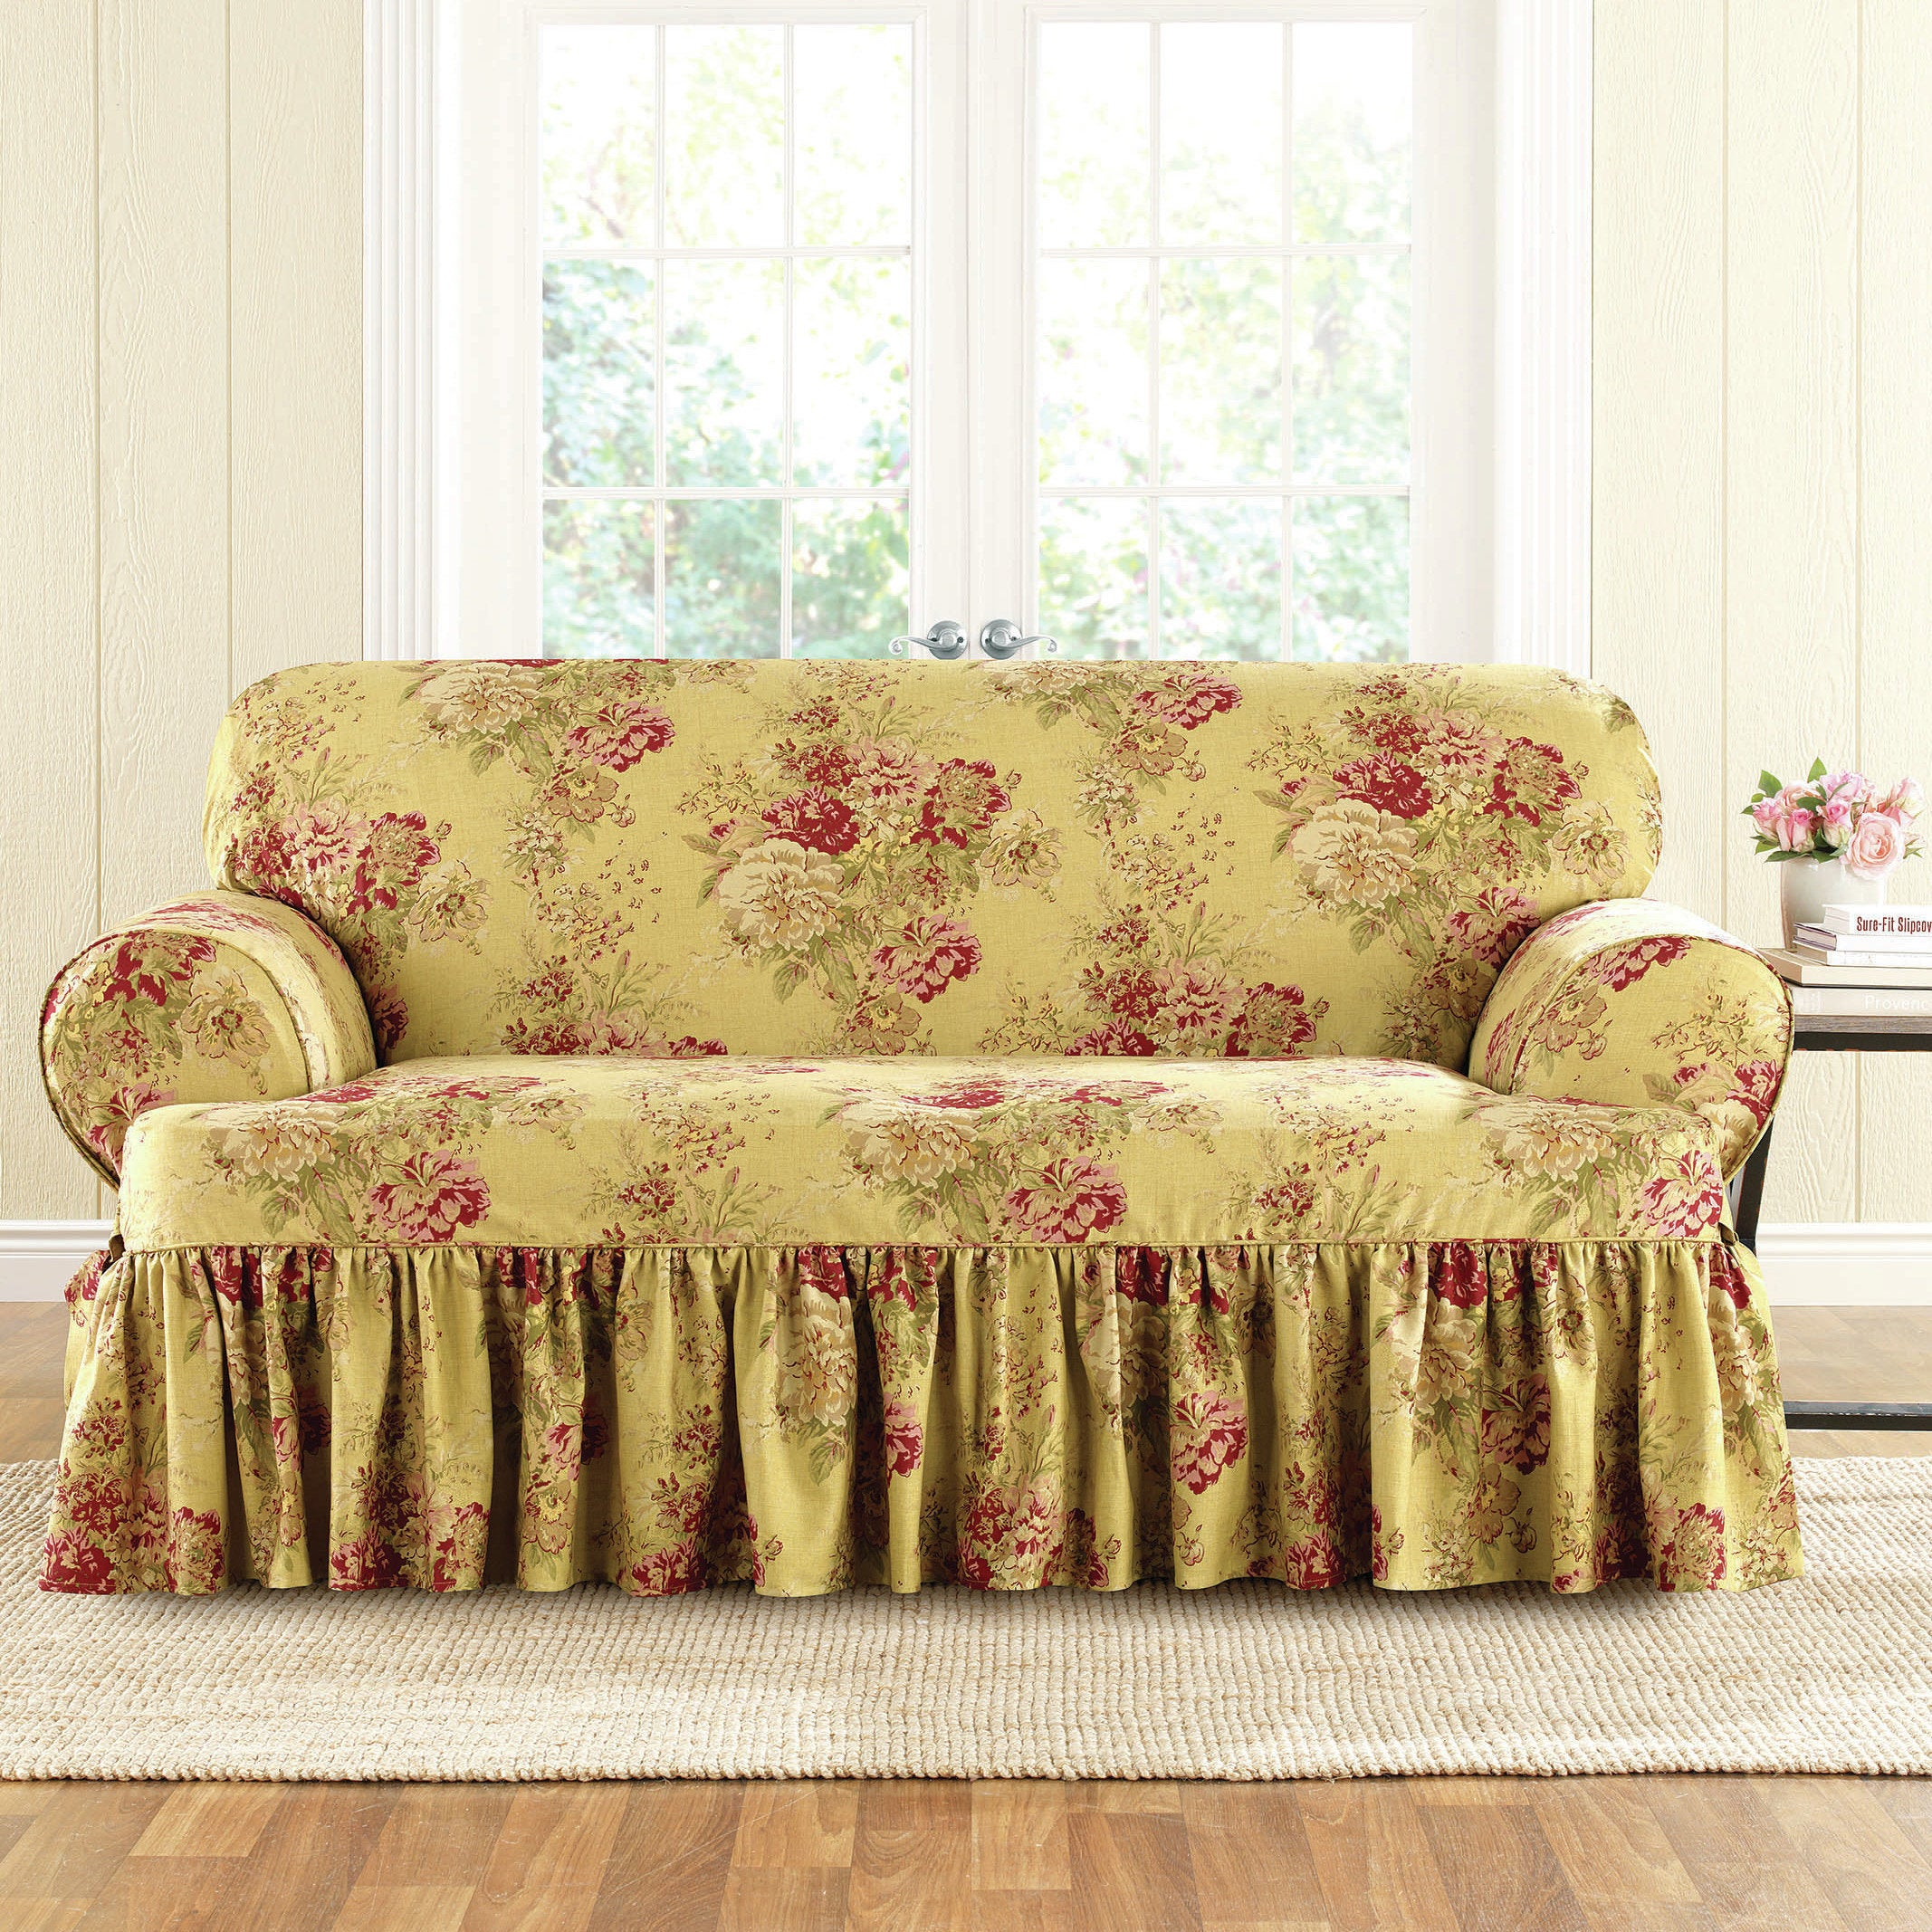 Superb Sure Fit Ballad Bouquet Loveseat T Cushion Skirted Slipcover Ncnpc Chair Design For Home Ncnpcorg